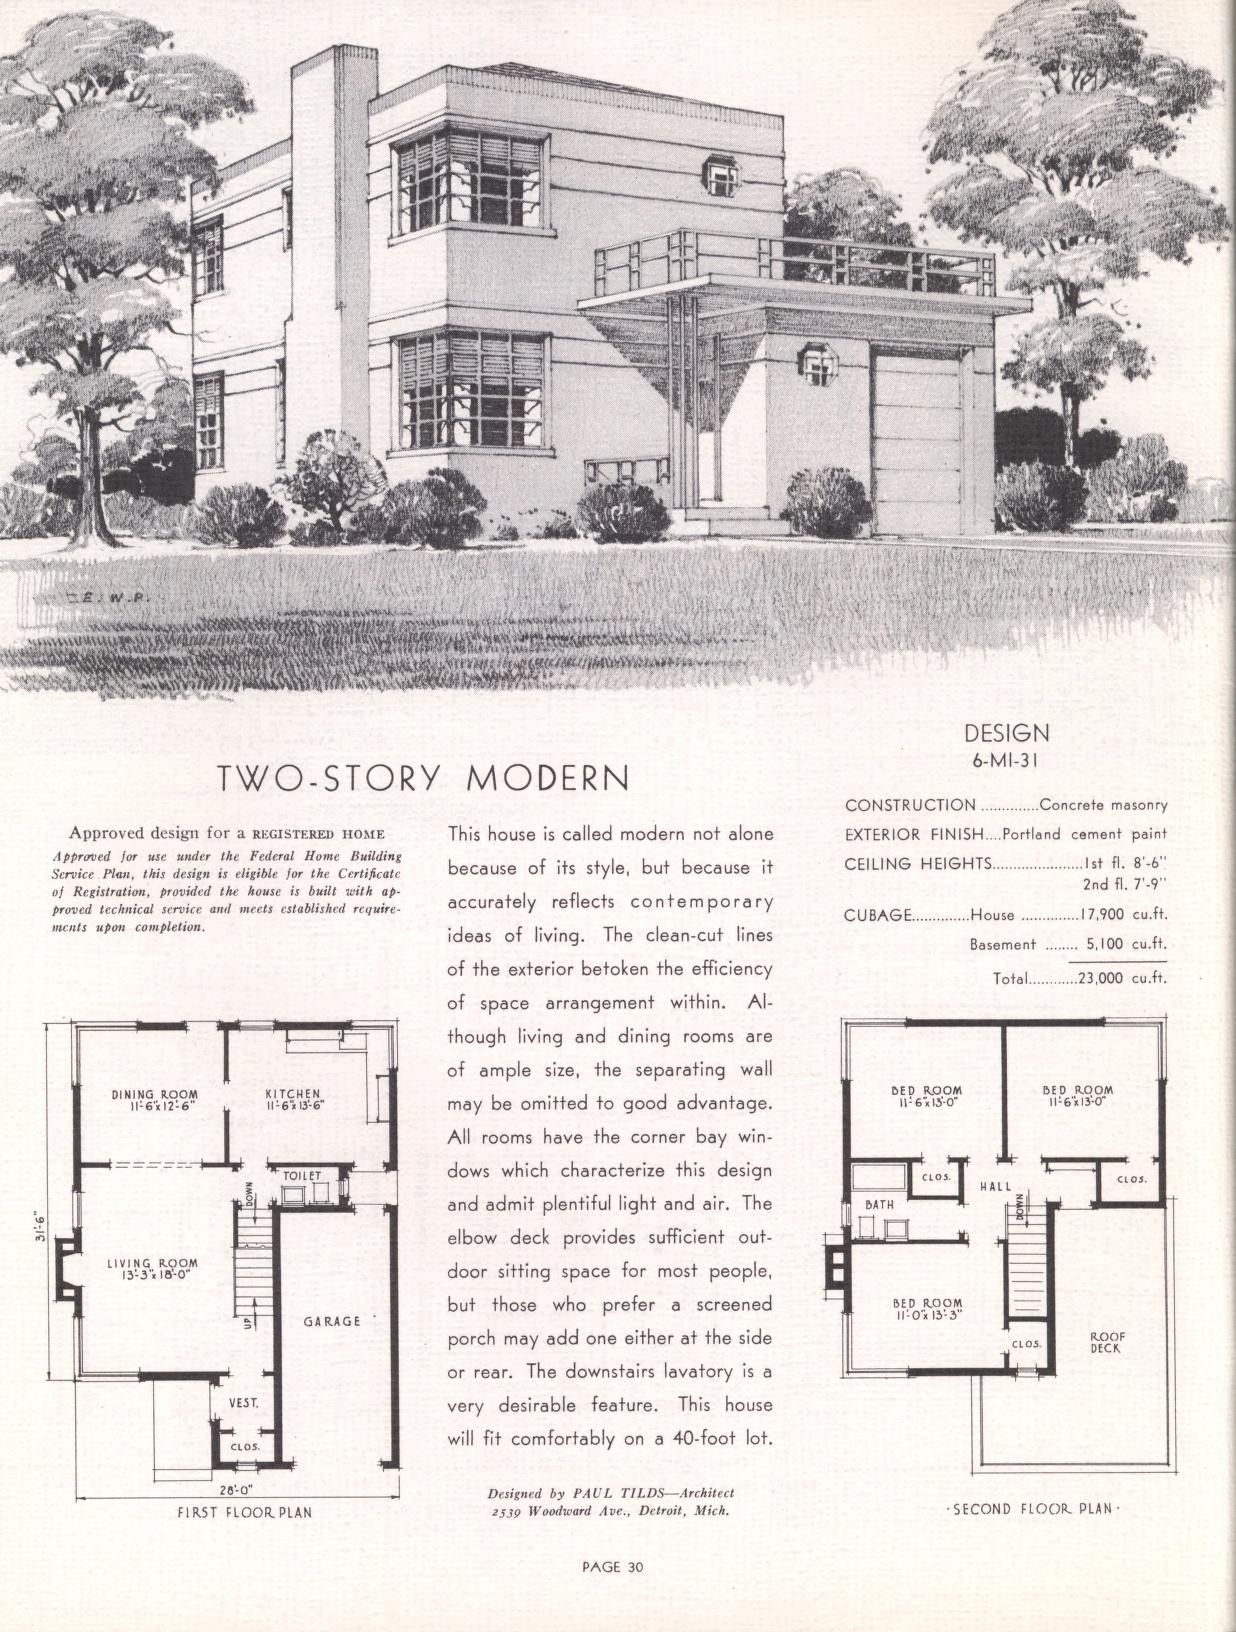 Pin By David Carr On Mid Century Modern Vintage House Plans Art